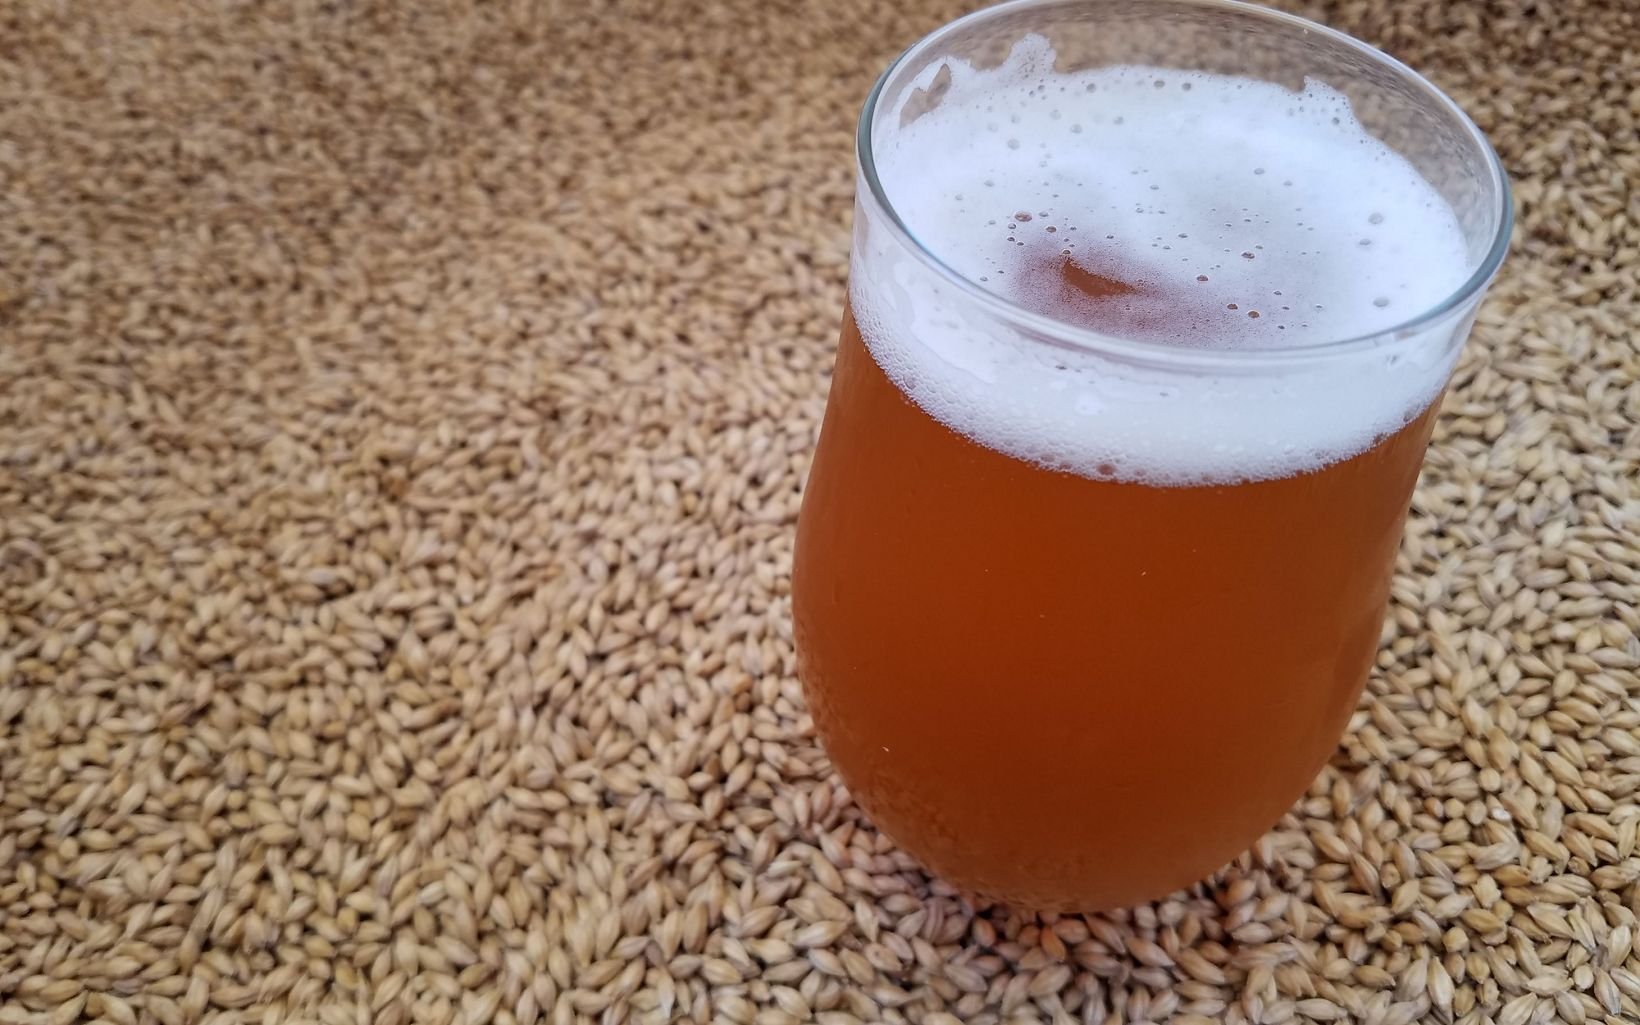 Local craft beer from barley grown at the Shield Ranch, and malted at Sinagua Malt in the town of Camp Verde.